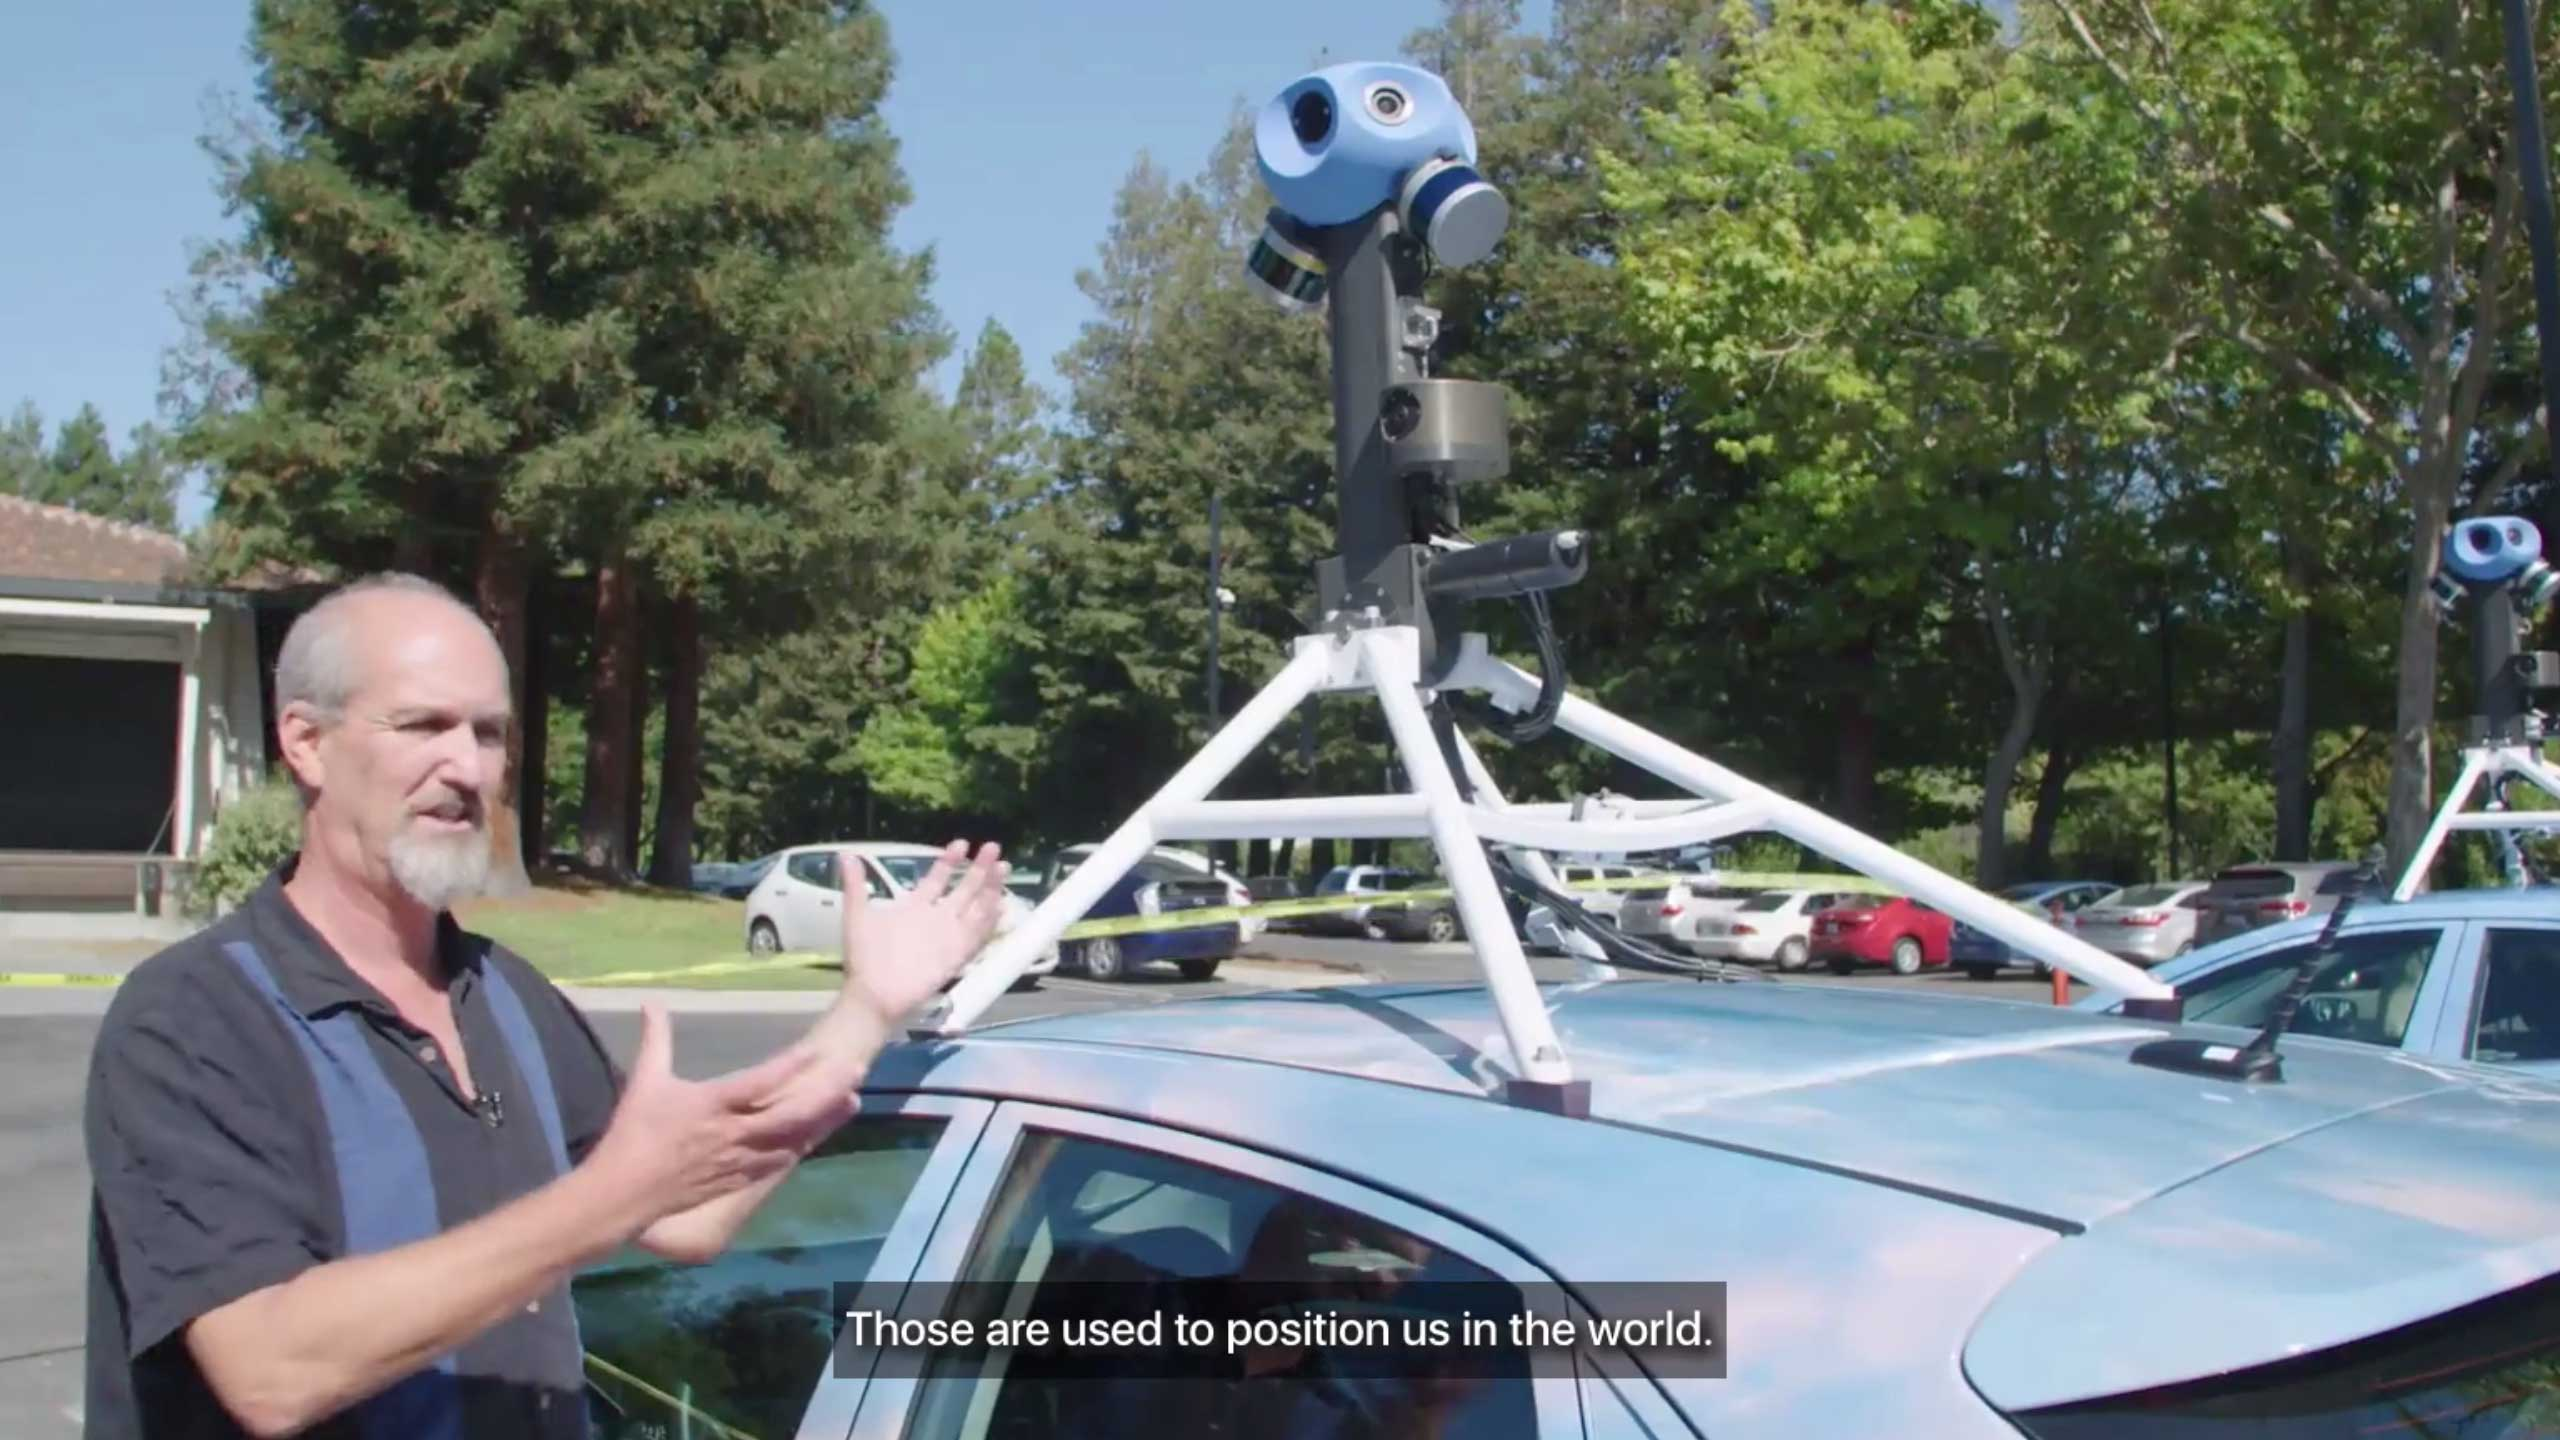 """A white man stands beside a car with a camera mounted on its roof. A visible caption says """"Those are used to position us in the world."""""""